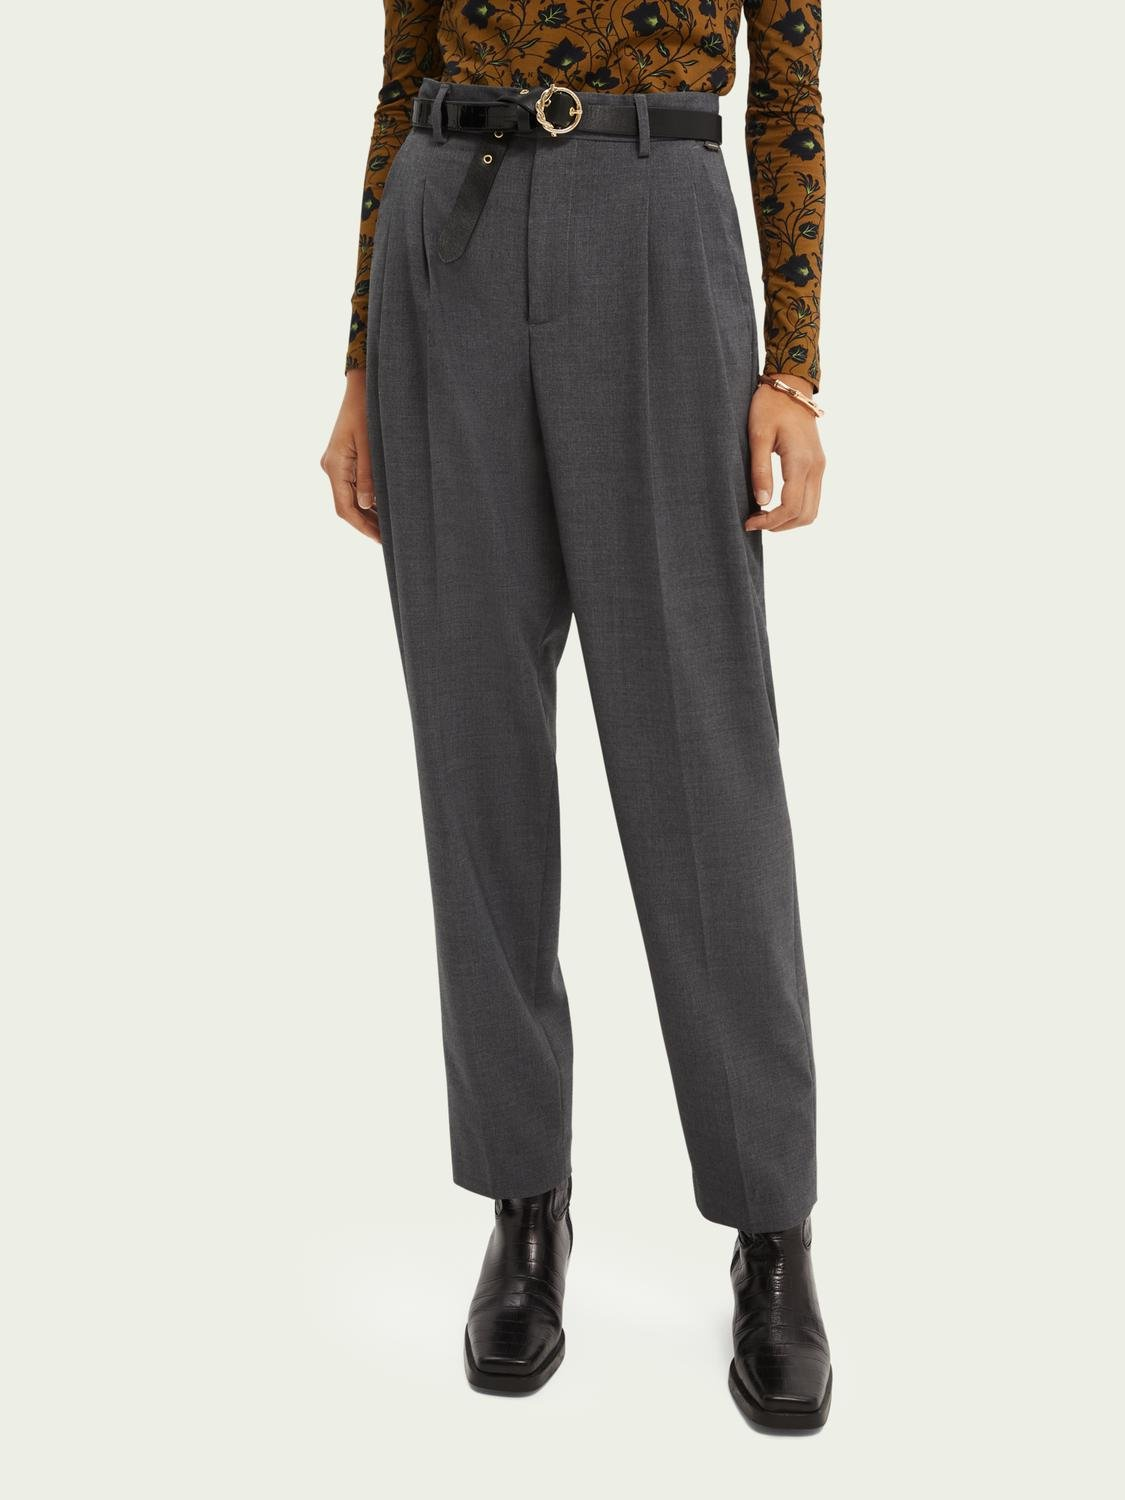 Tailored carrot-leg high-rise trousers